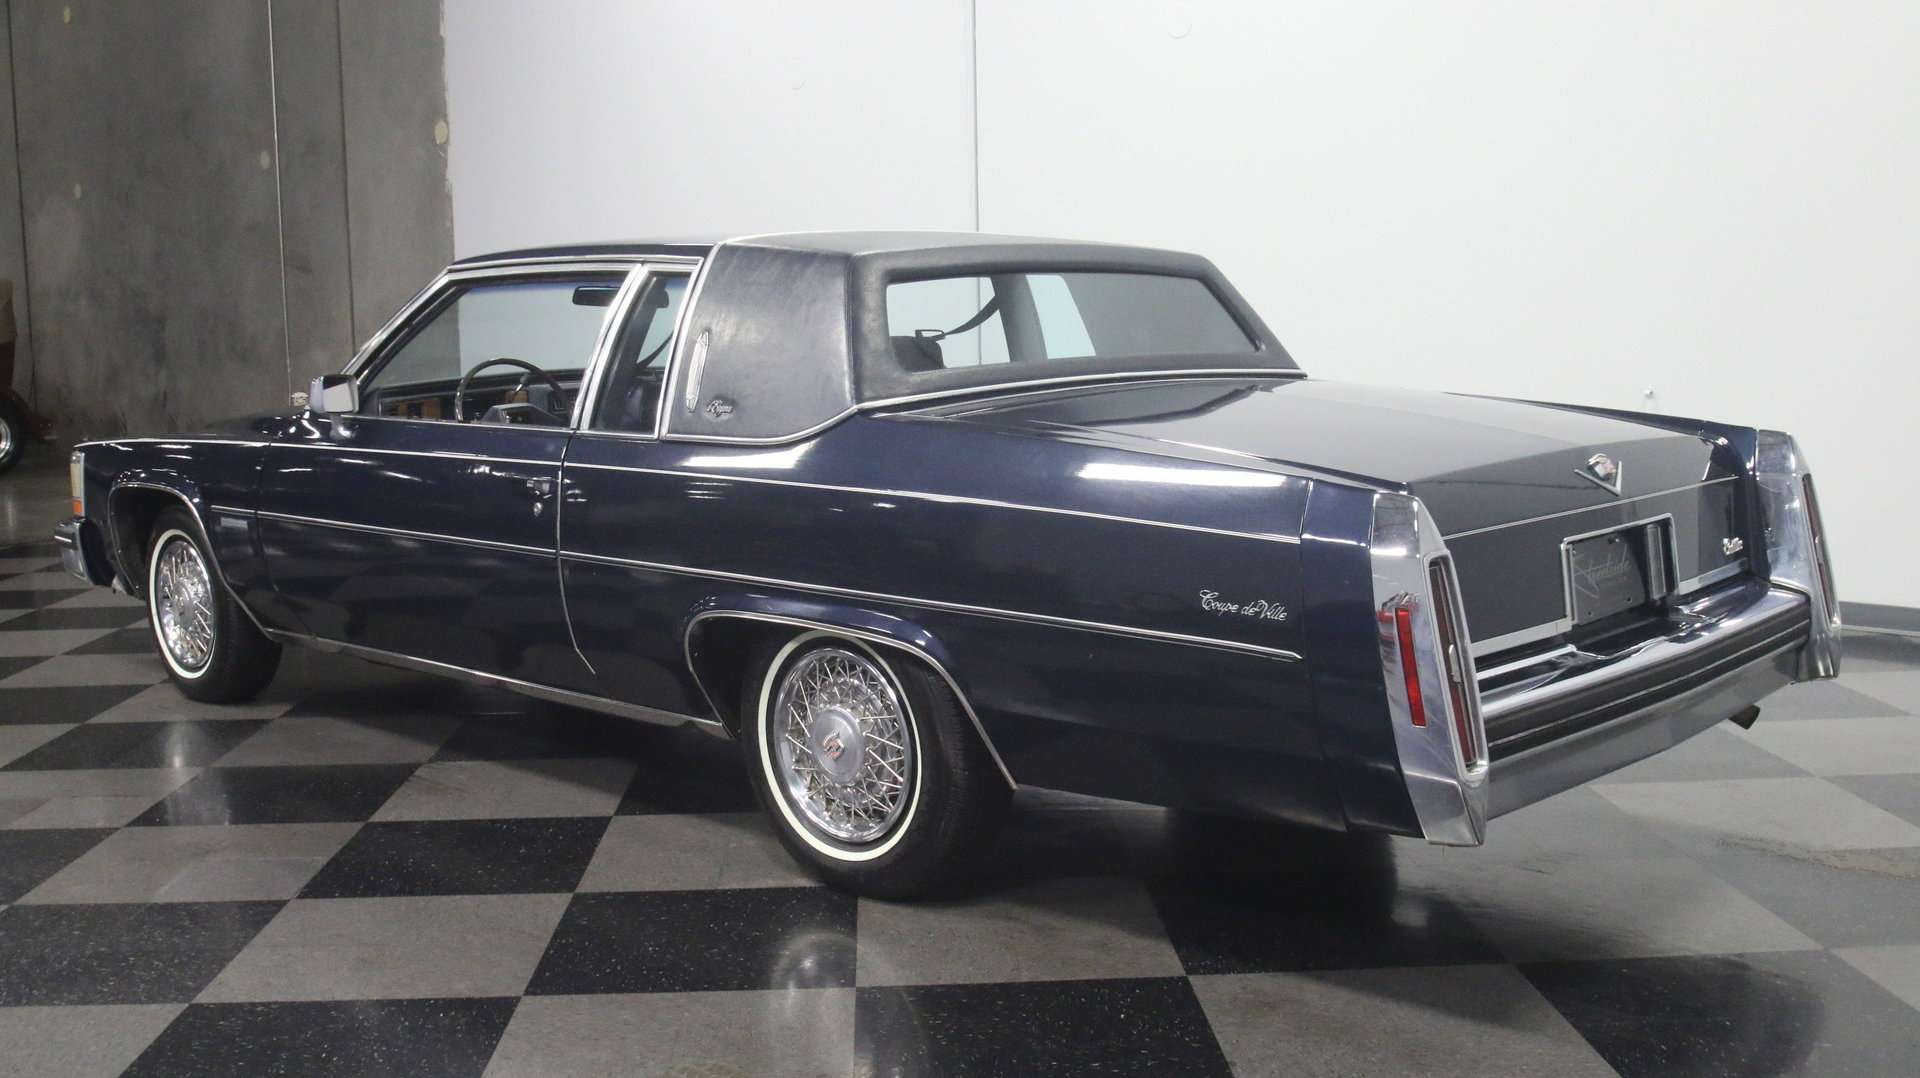 1983 Cadillac Coupe Deville De Elegance For Sale 99257 Mcg